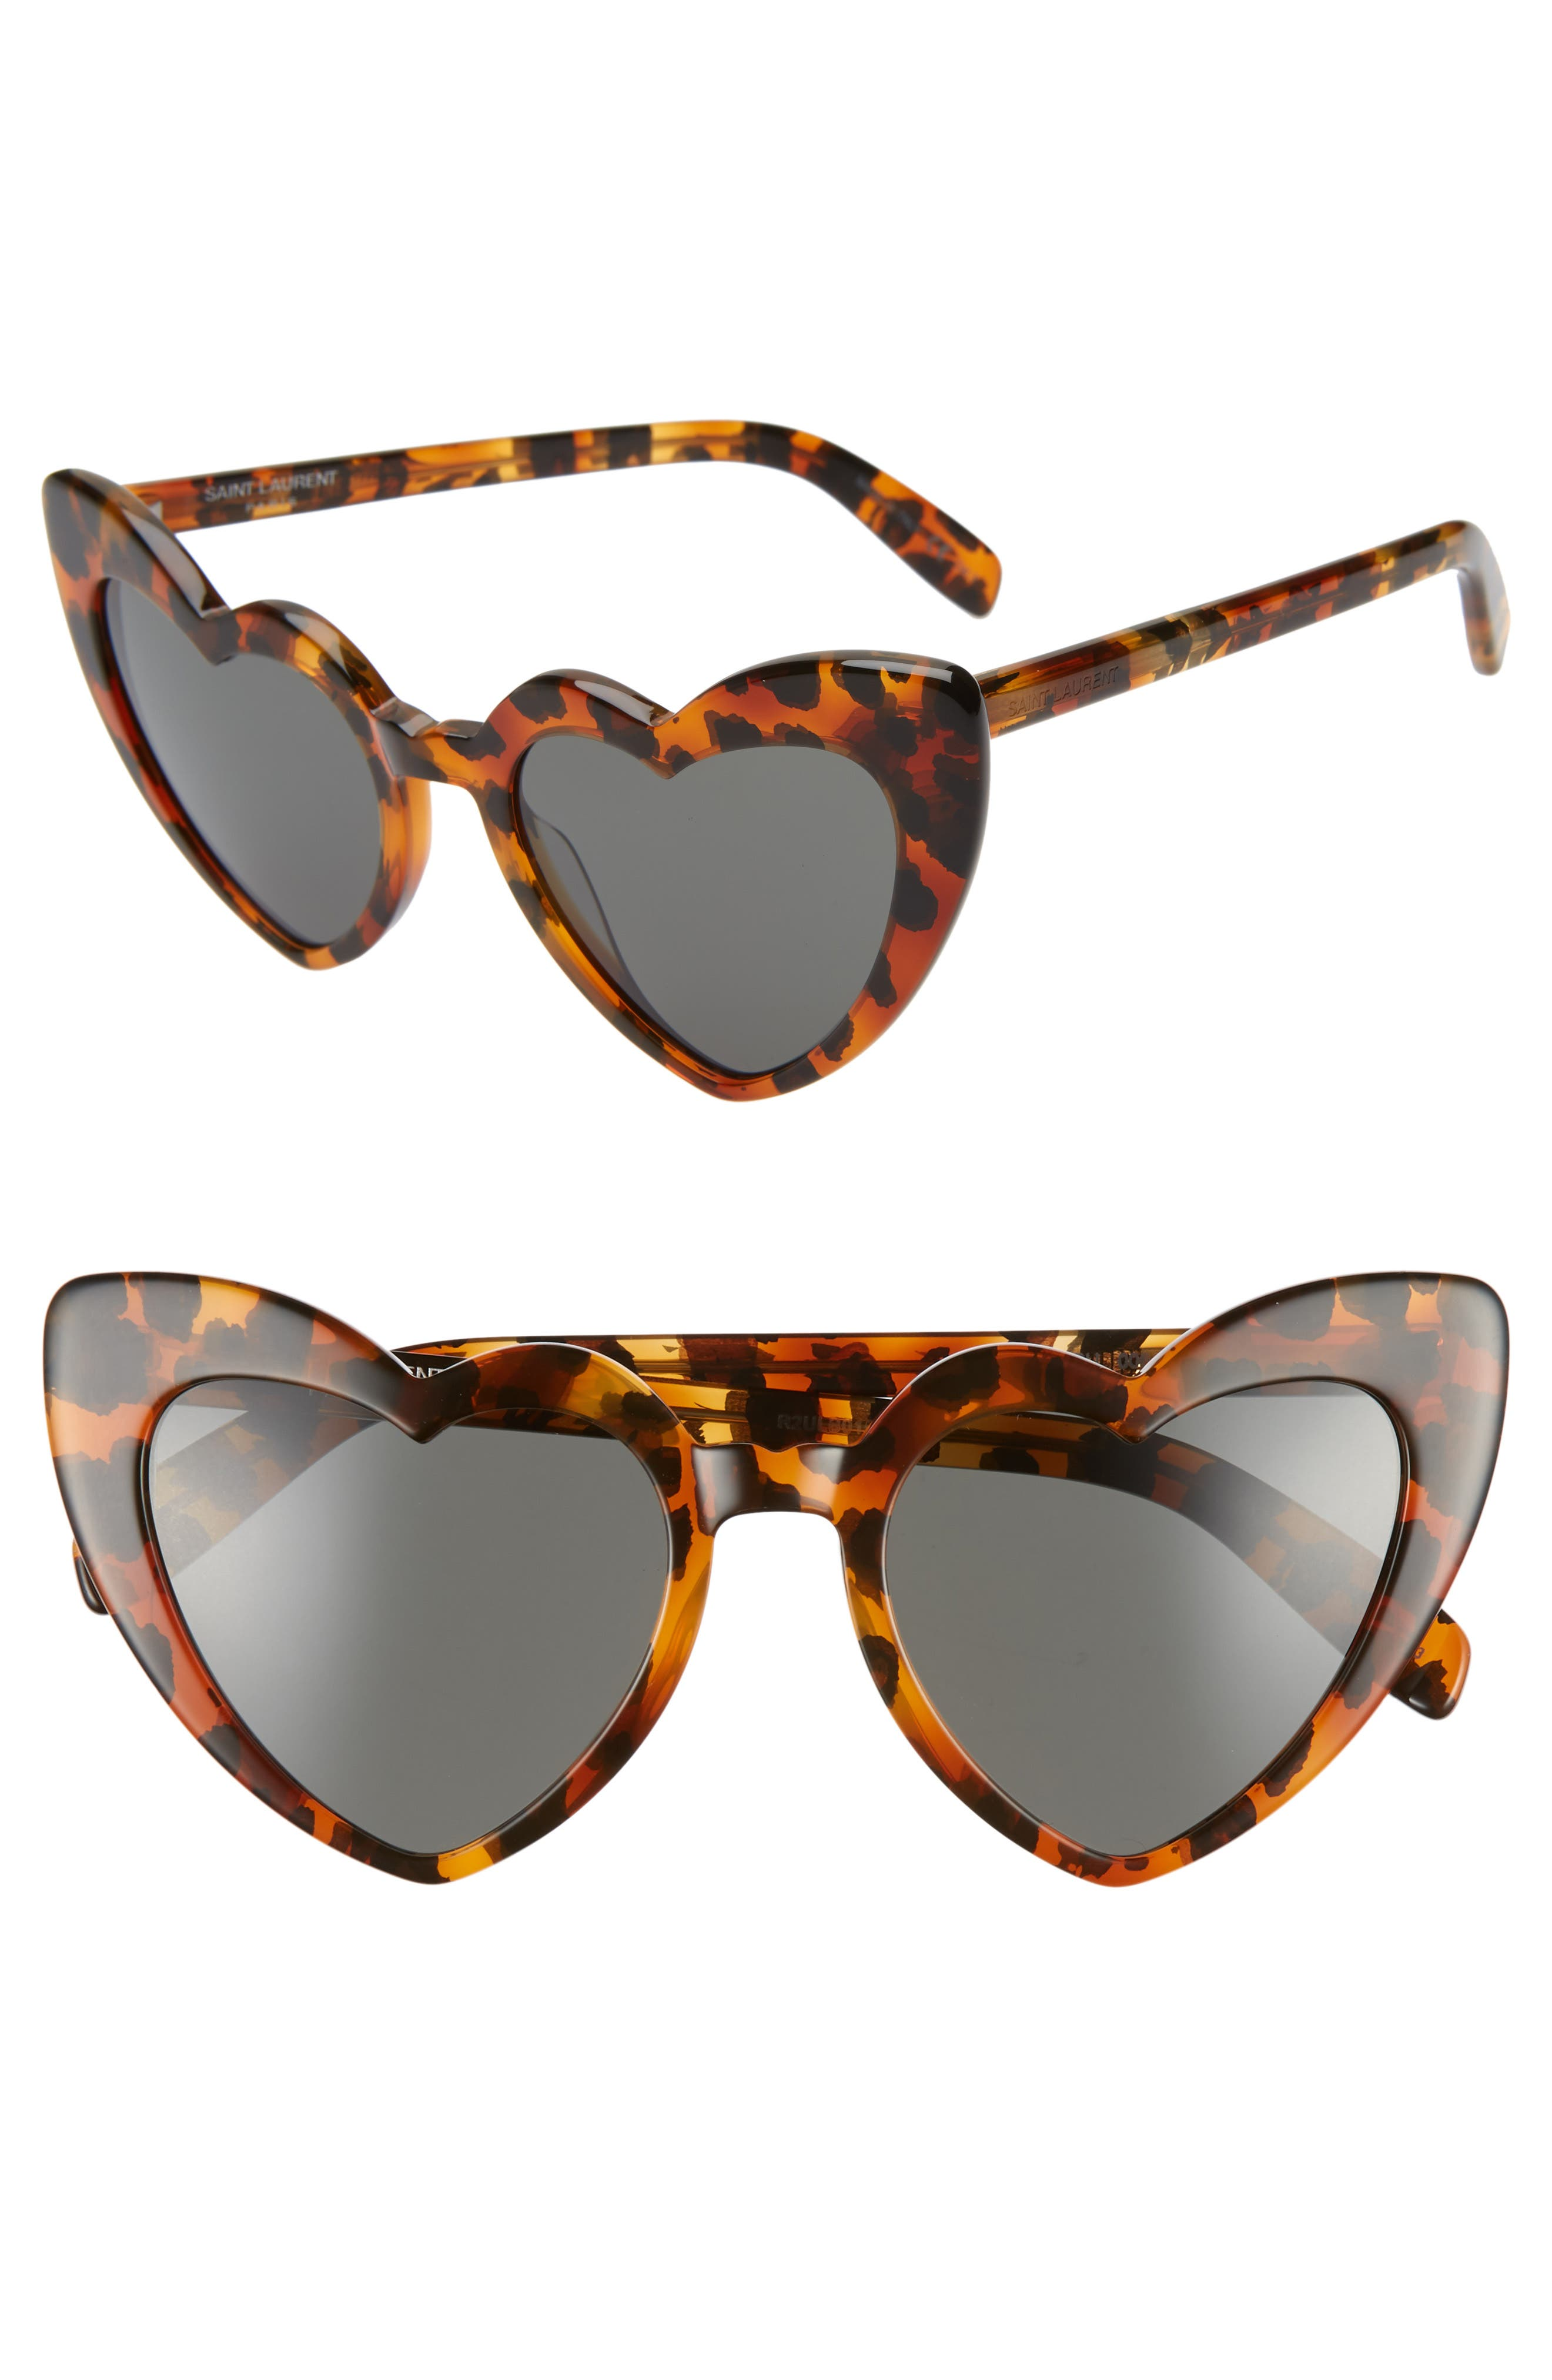 Saint Laurent Loulou 5m Heart Sunglasses - Leopard Havana/ Grey